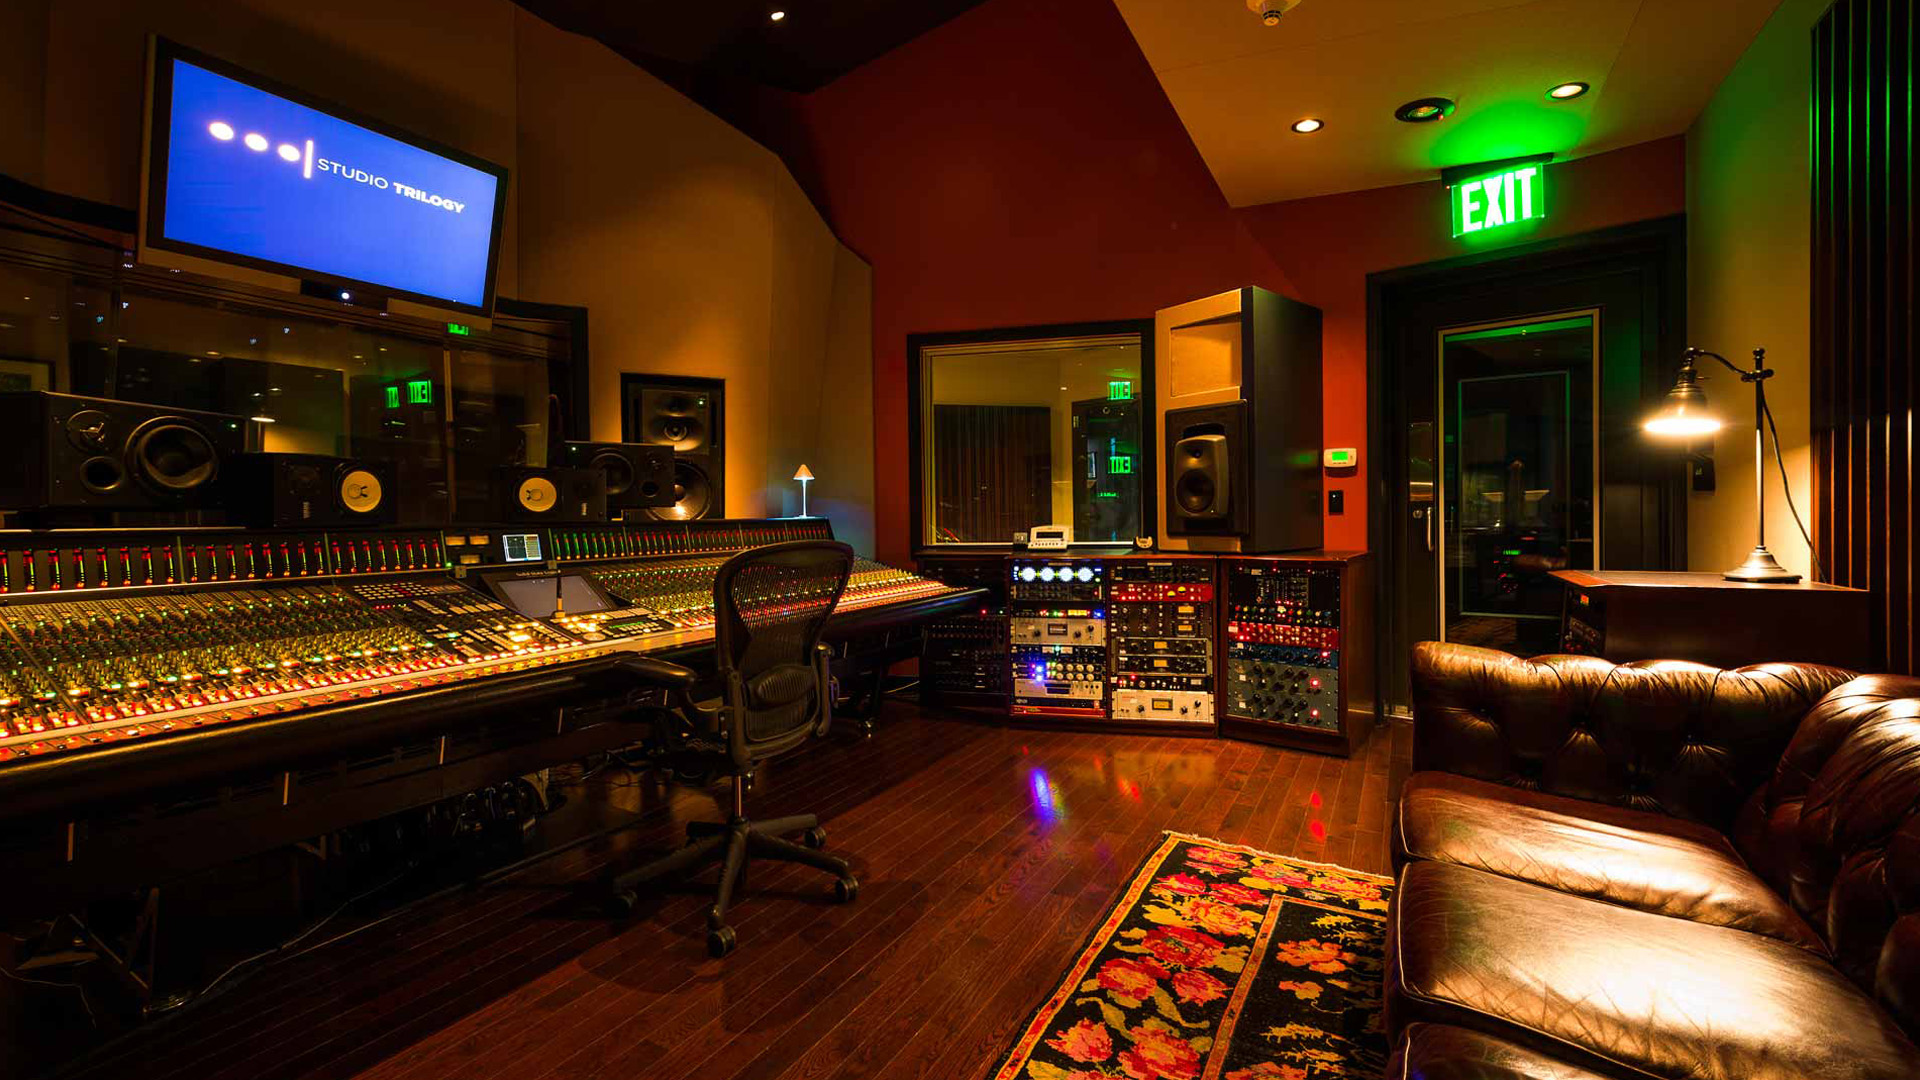 HD Recording Studio Wallpaper